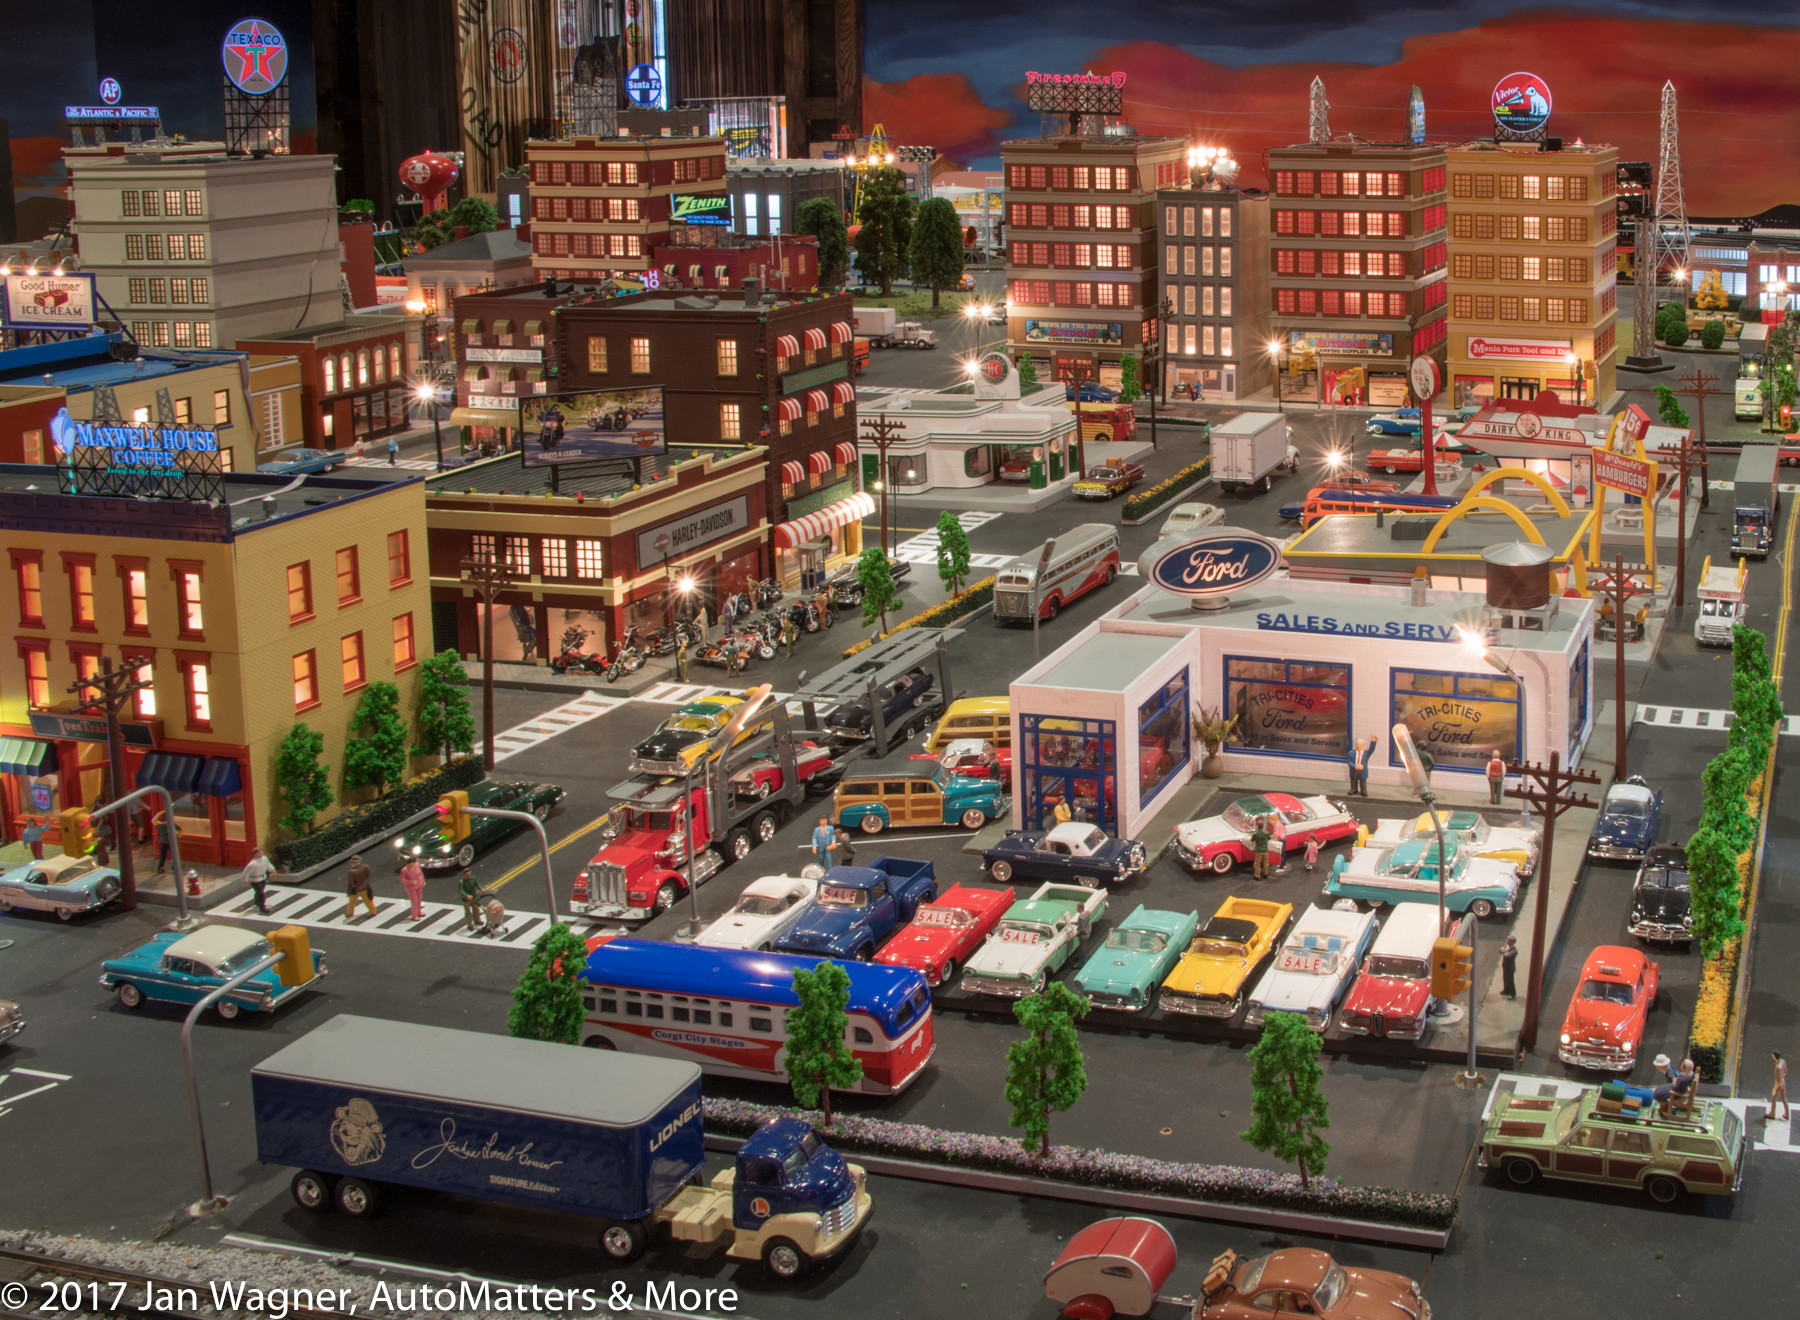 Huge city scene in miniature.